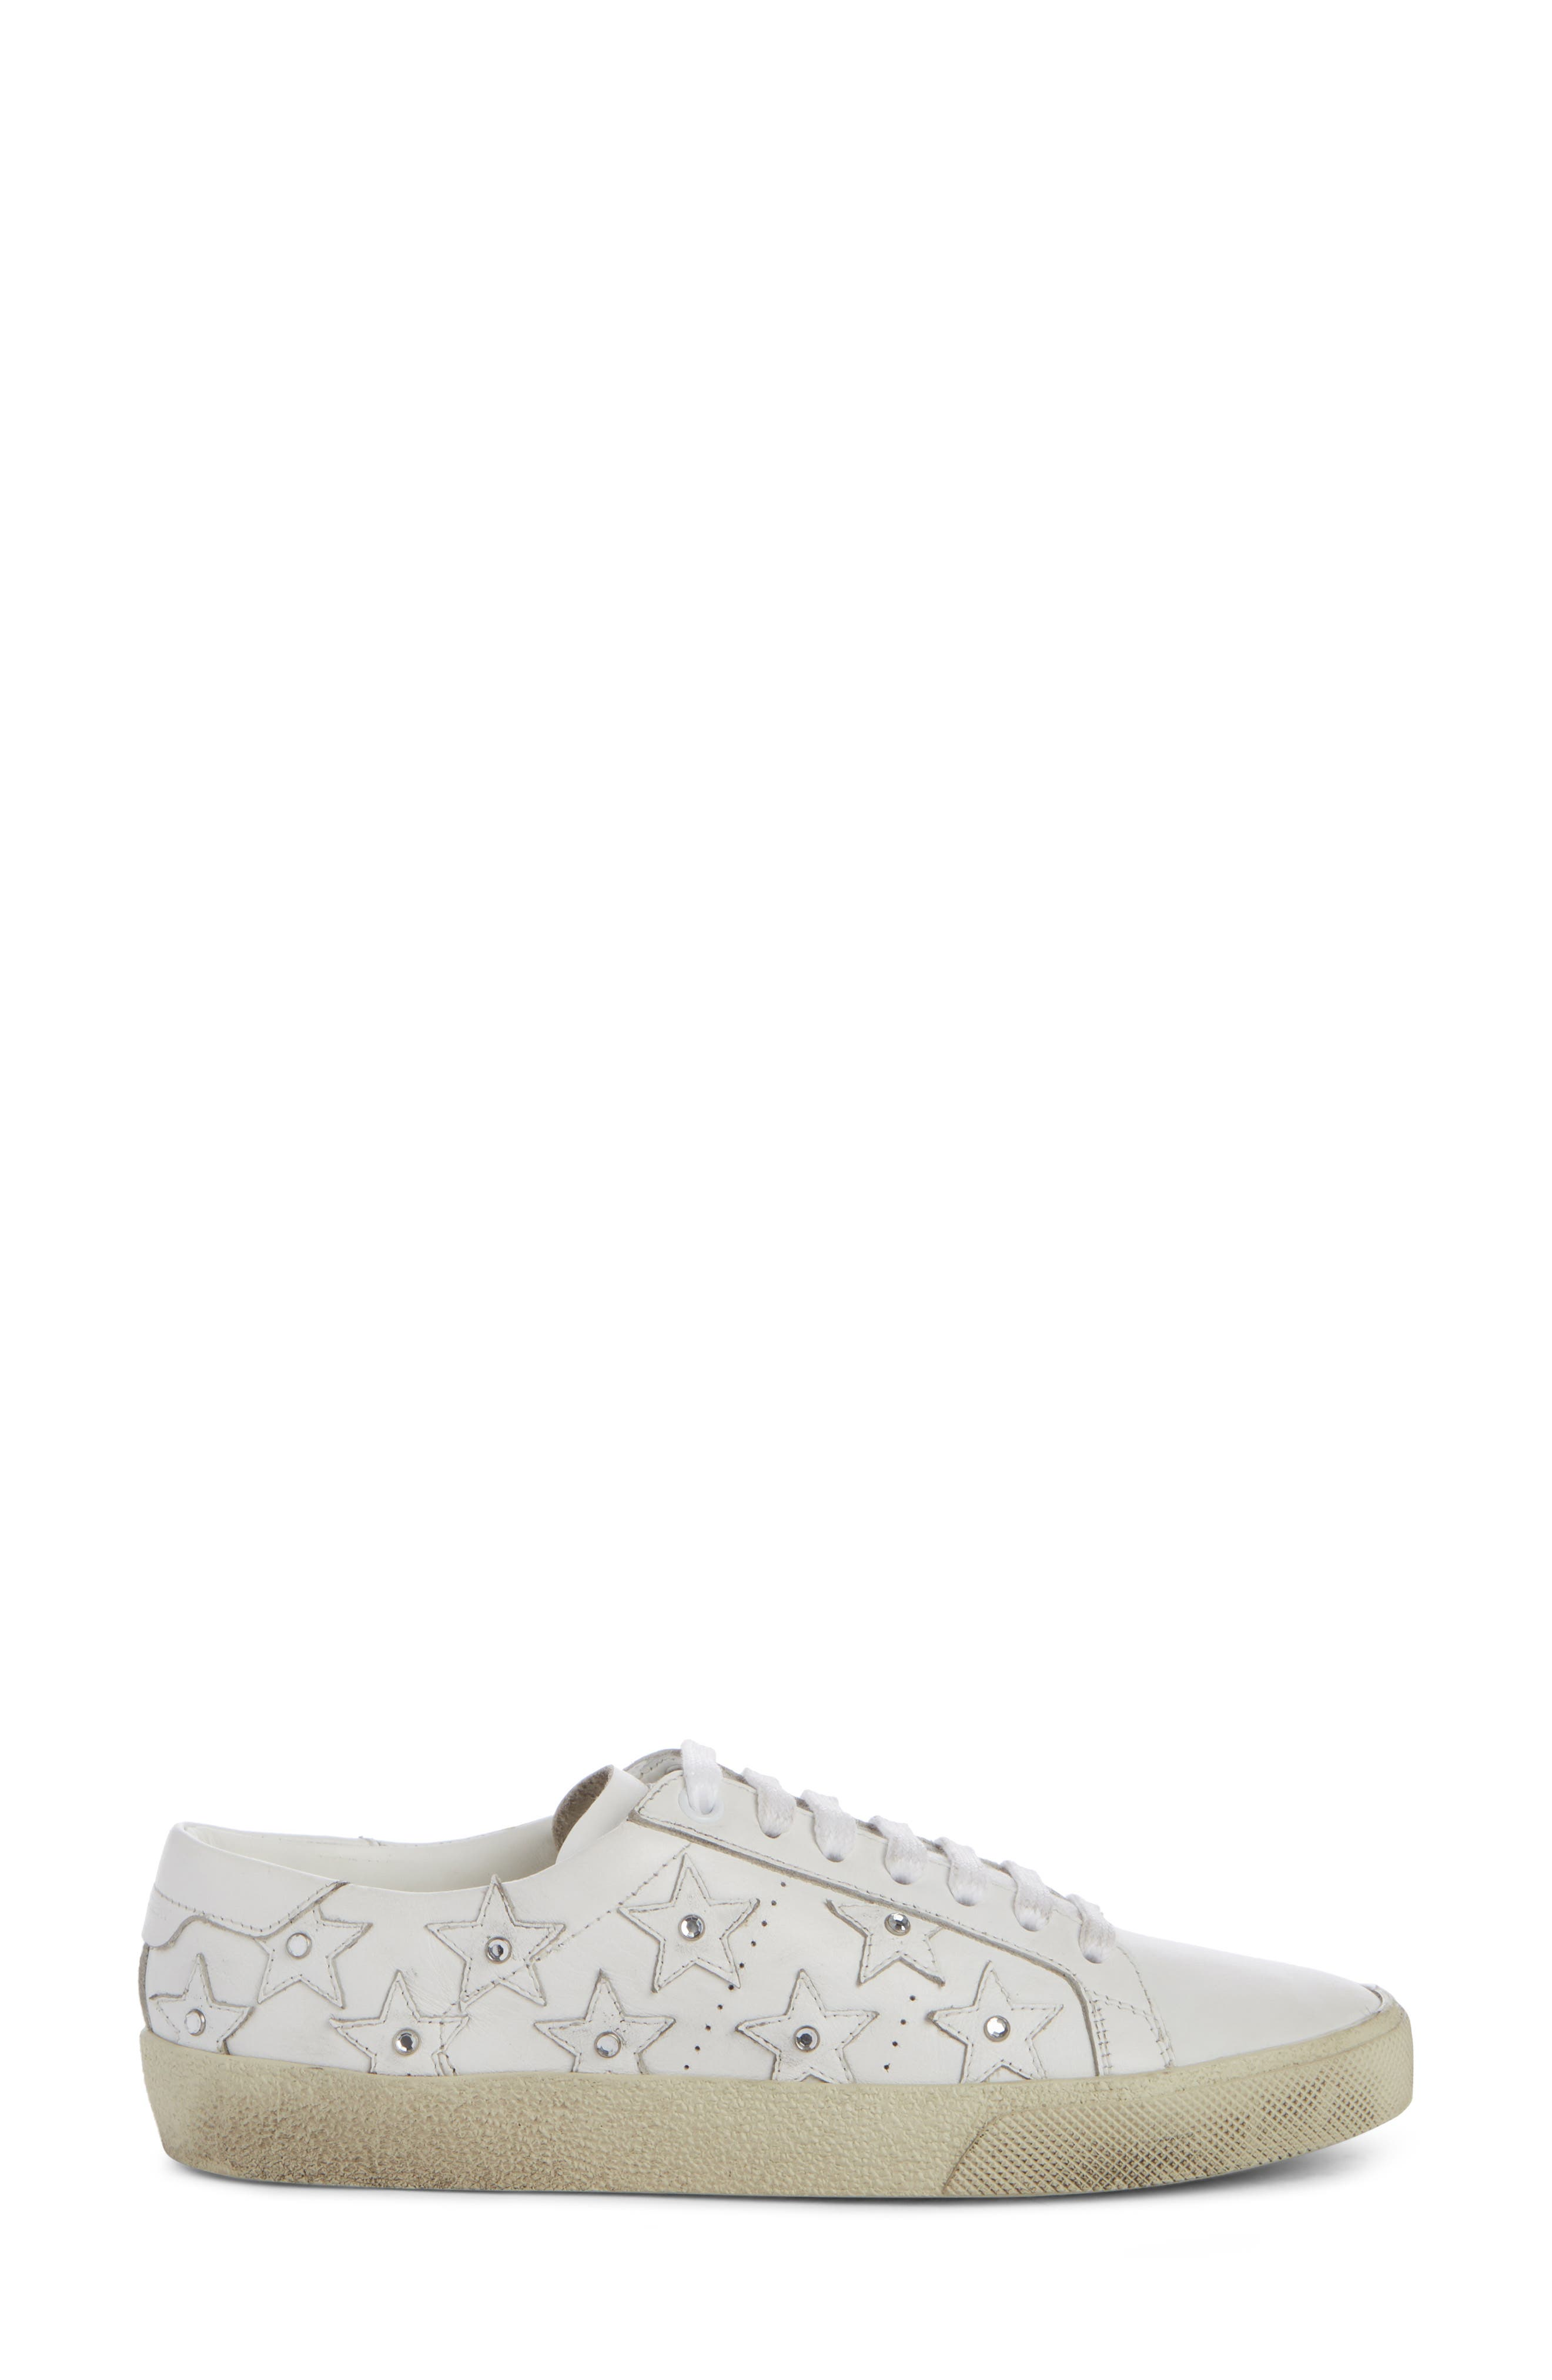 Court Classic Embellished Star Sneaker,                             Alternate thumbnail 4, color,                             White